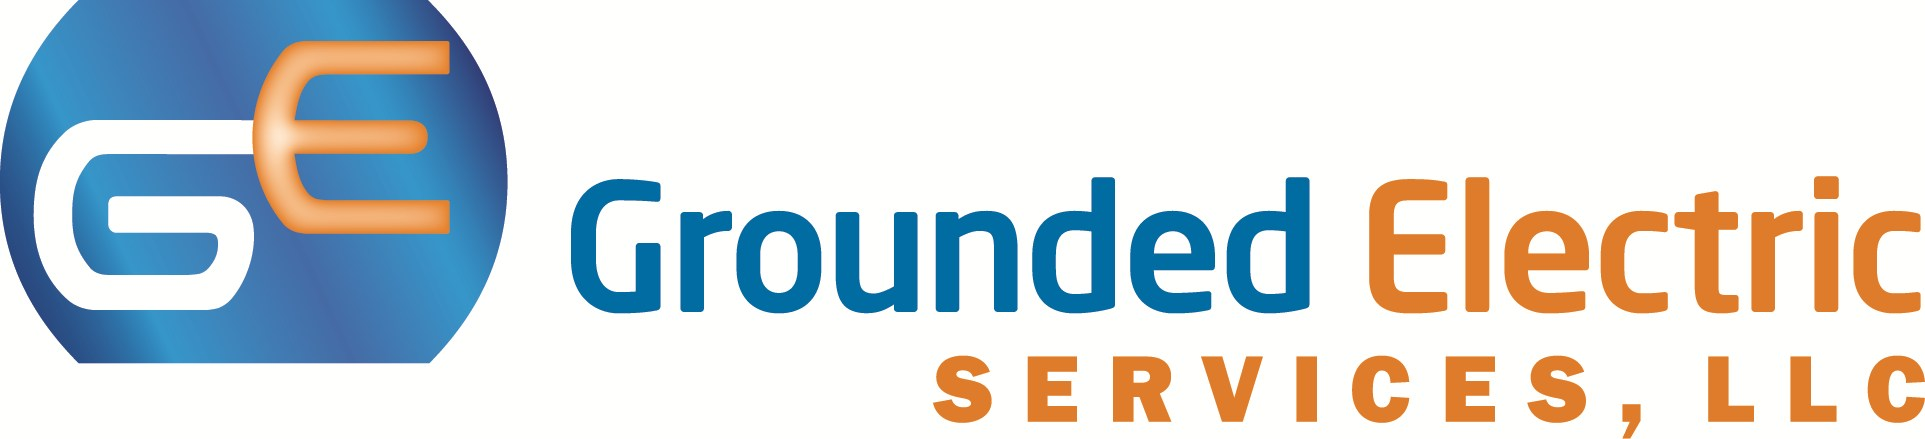 GROUNDED ELECTRIC SERVICES LLC logo